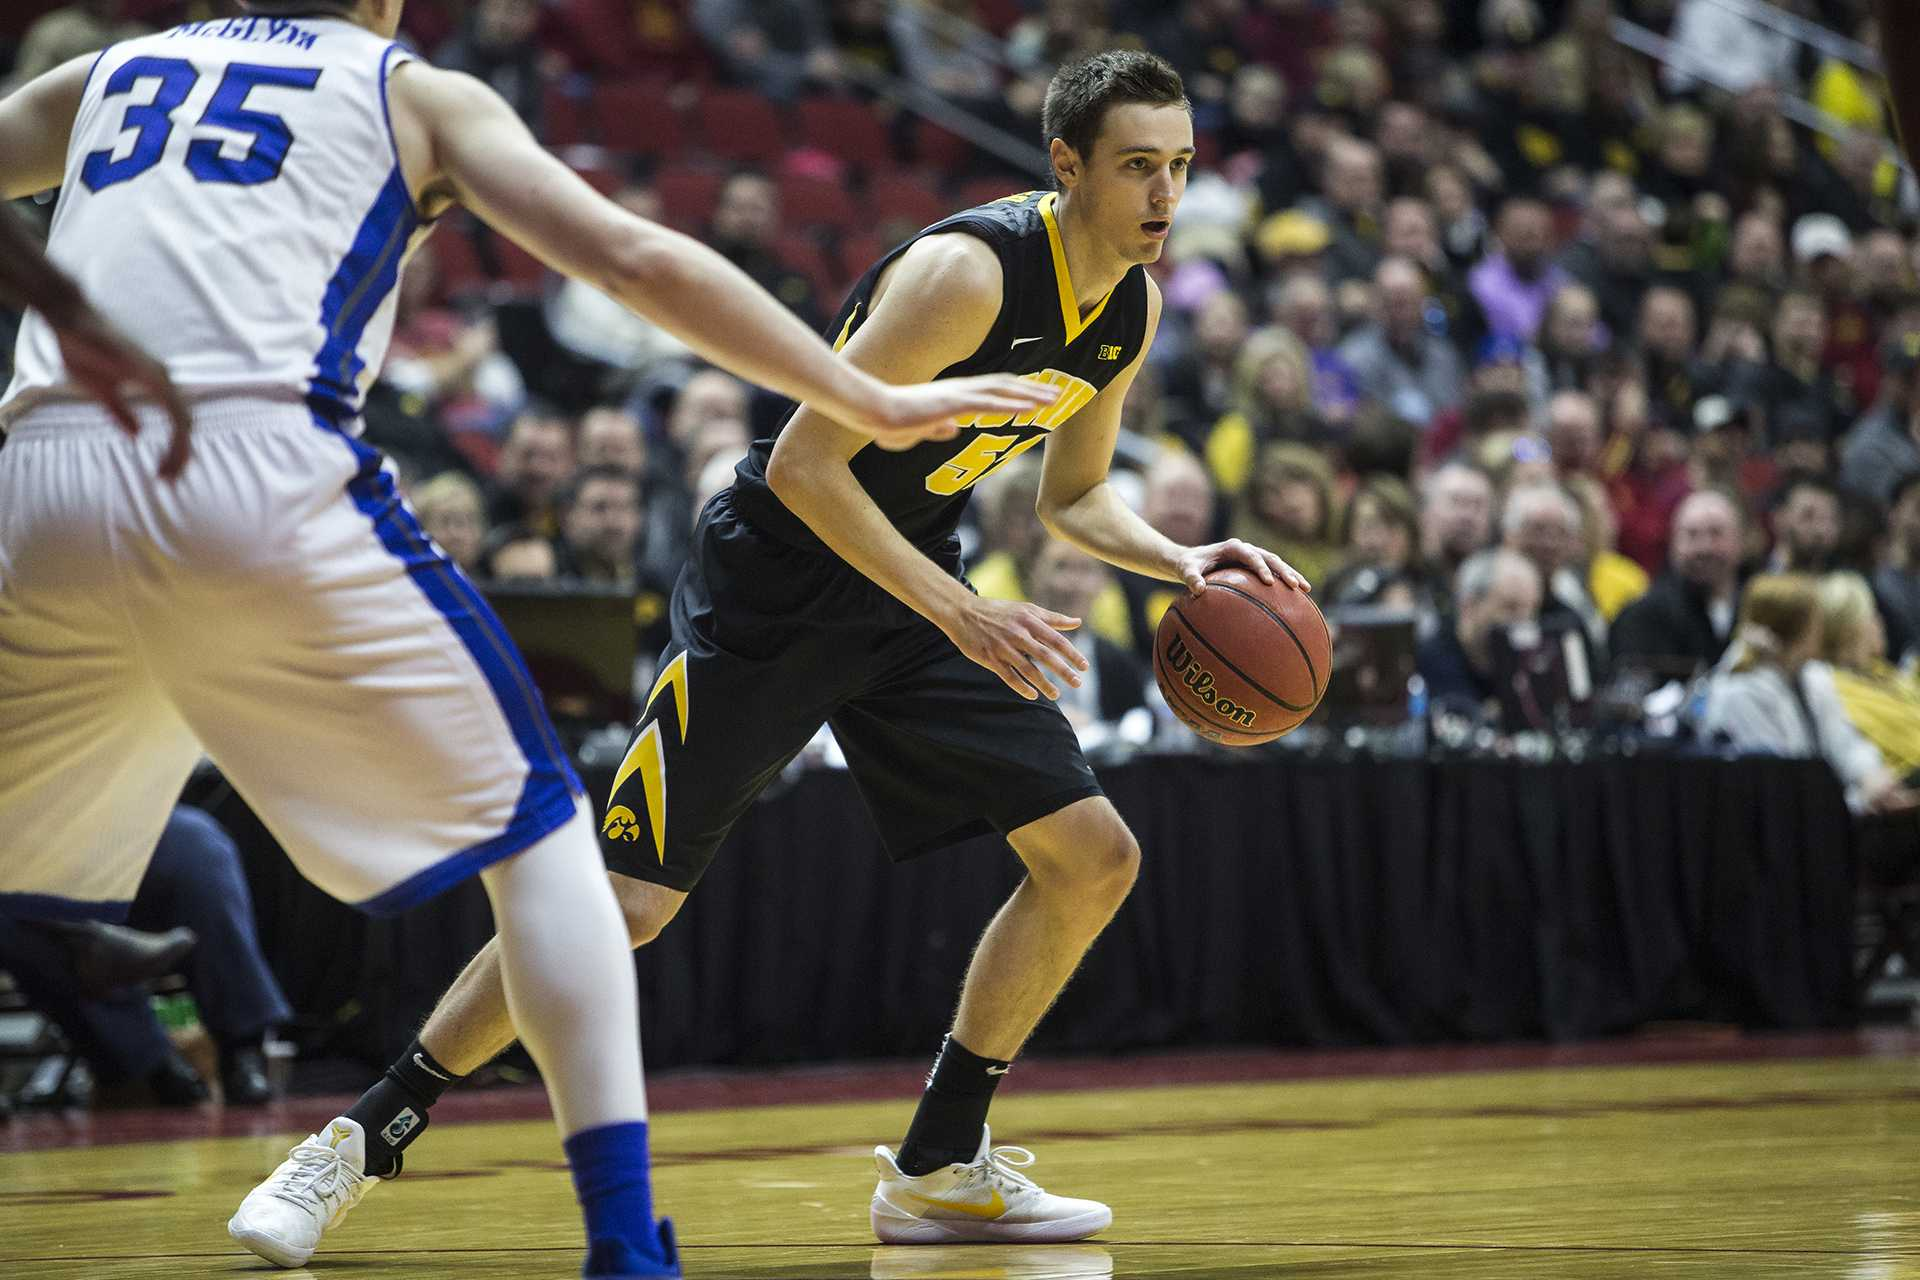 Iowa's Nicholas Baer (51) looks for an open pass during the Hy-Vee Classic men's basketball tournament at Wells Fargo Arena in Des Moines on Saturday, Dec. 16, 2017. The Hawkeyes beat the Bulldogs 90-64. (Ben Allan Smith/The Daily Iowan)